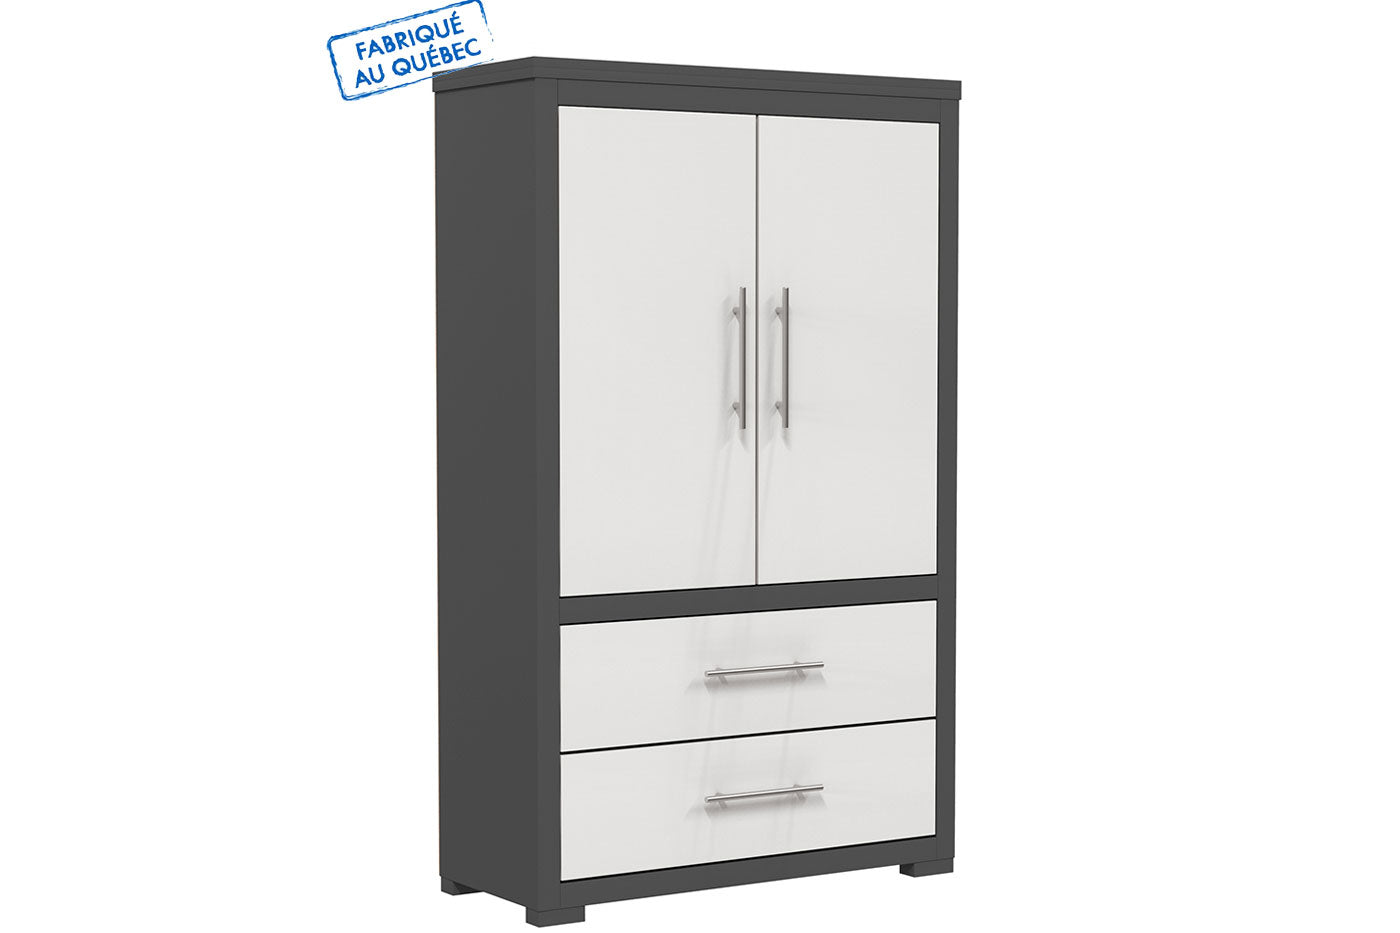 Barton wardrobe in wood finish - Dark gray and white